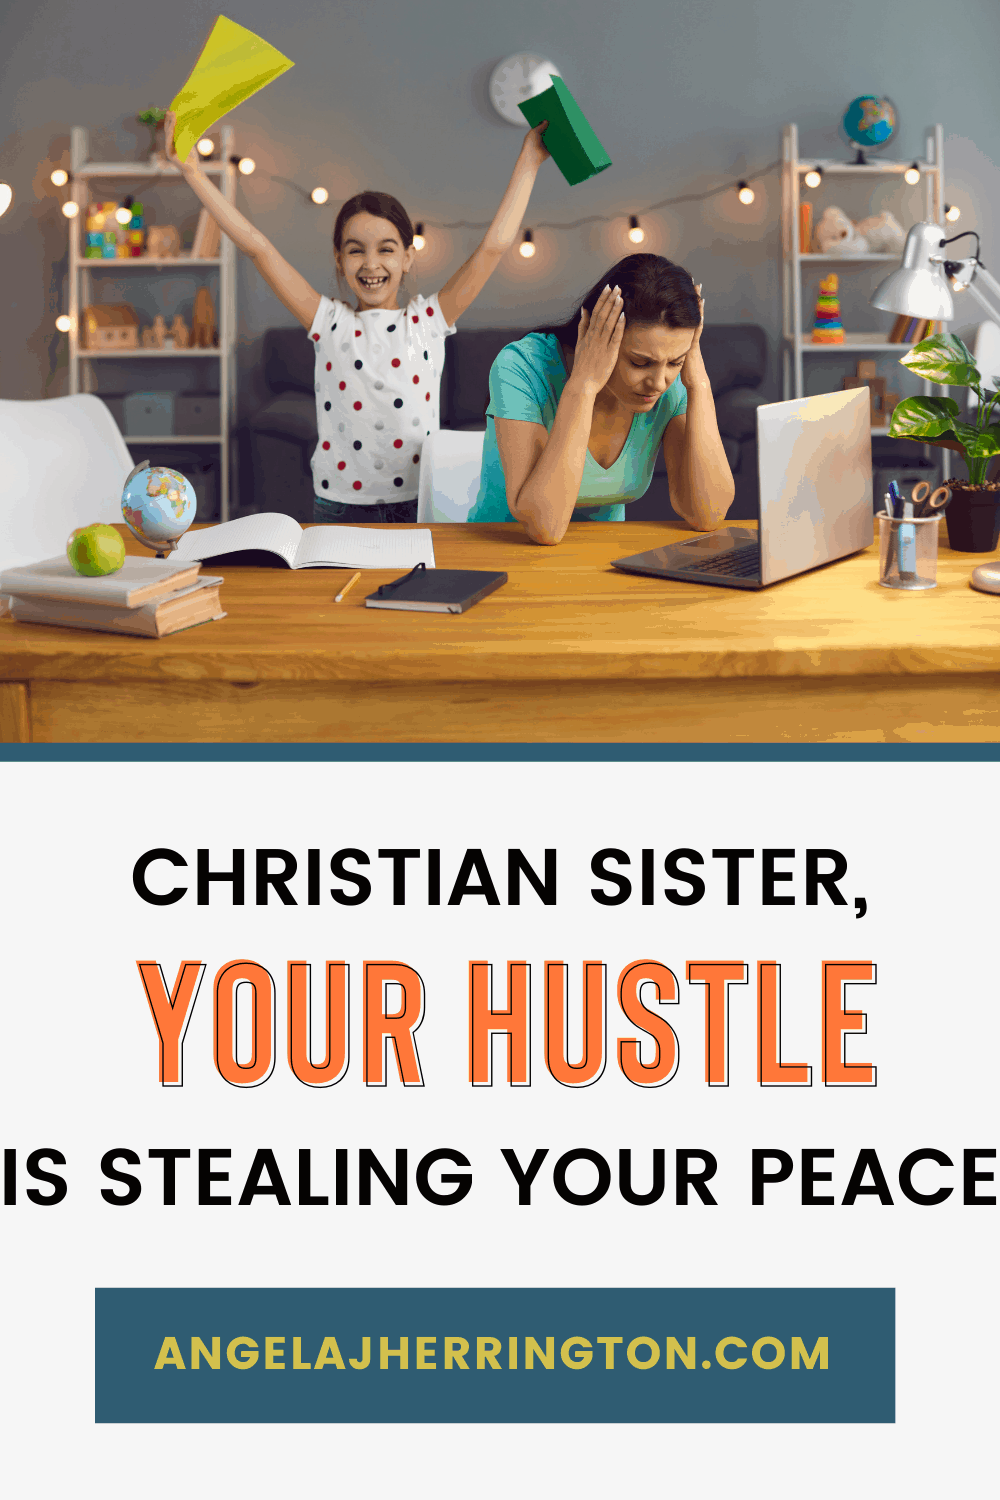 your hustle is stealing your peace and it's toxic religion's fault